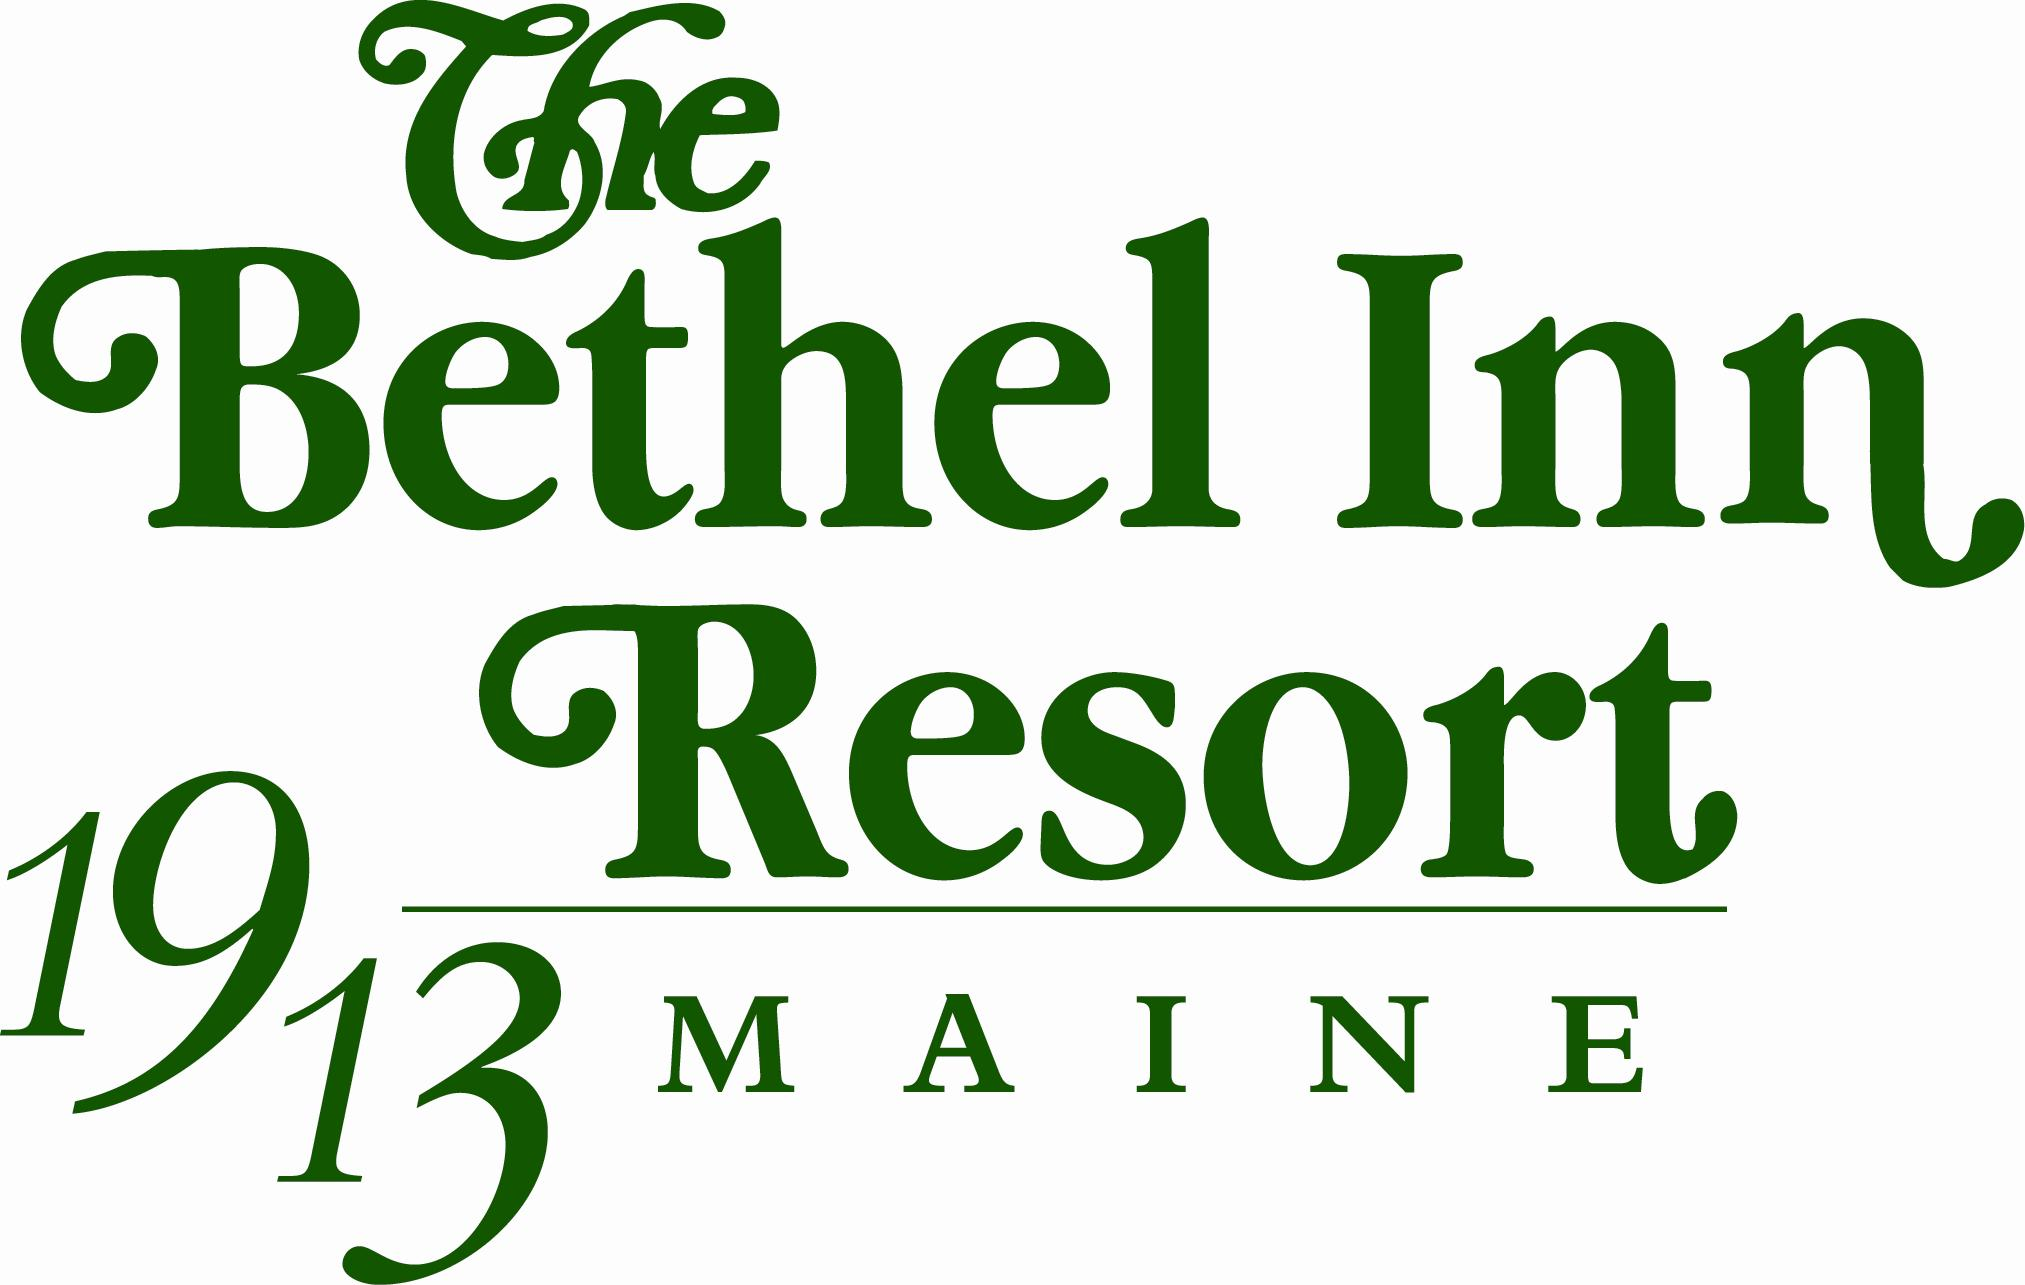 The Bethel Inn Resort